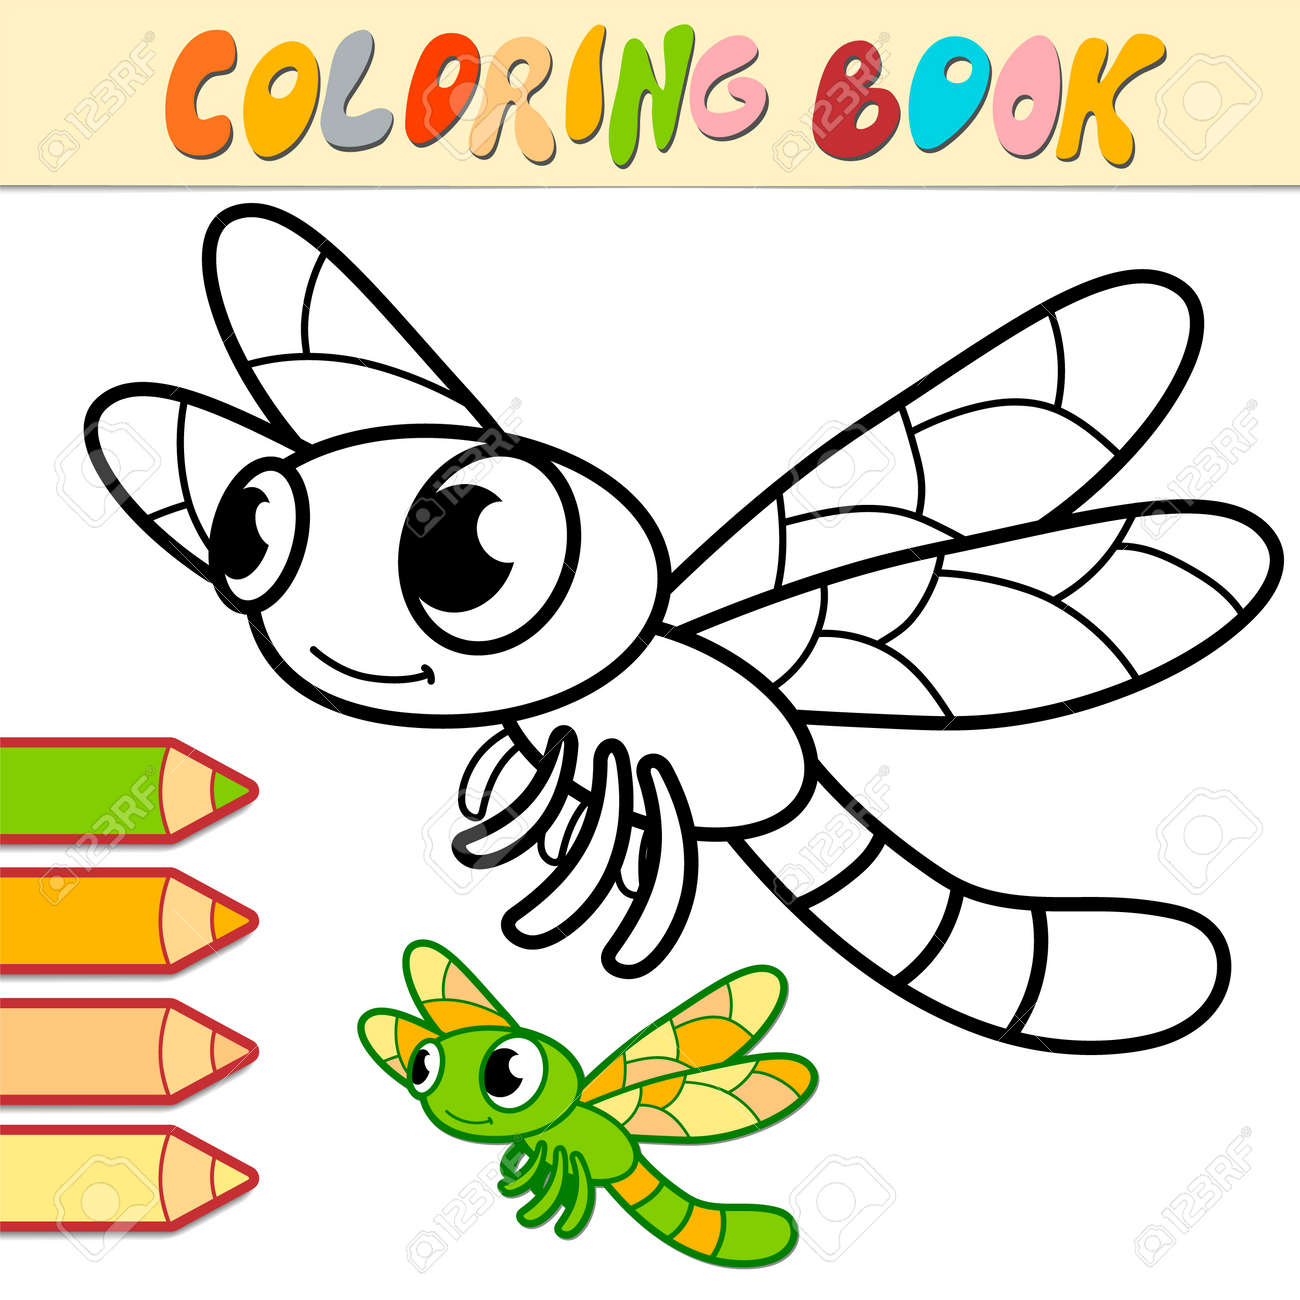 Coloring book or page for kids. dragonfly black and white vector illustration - 168781299